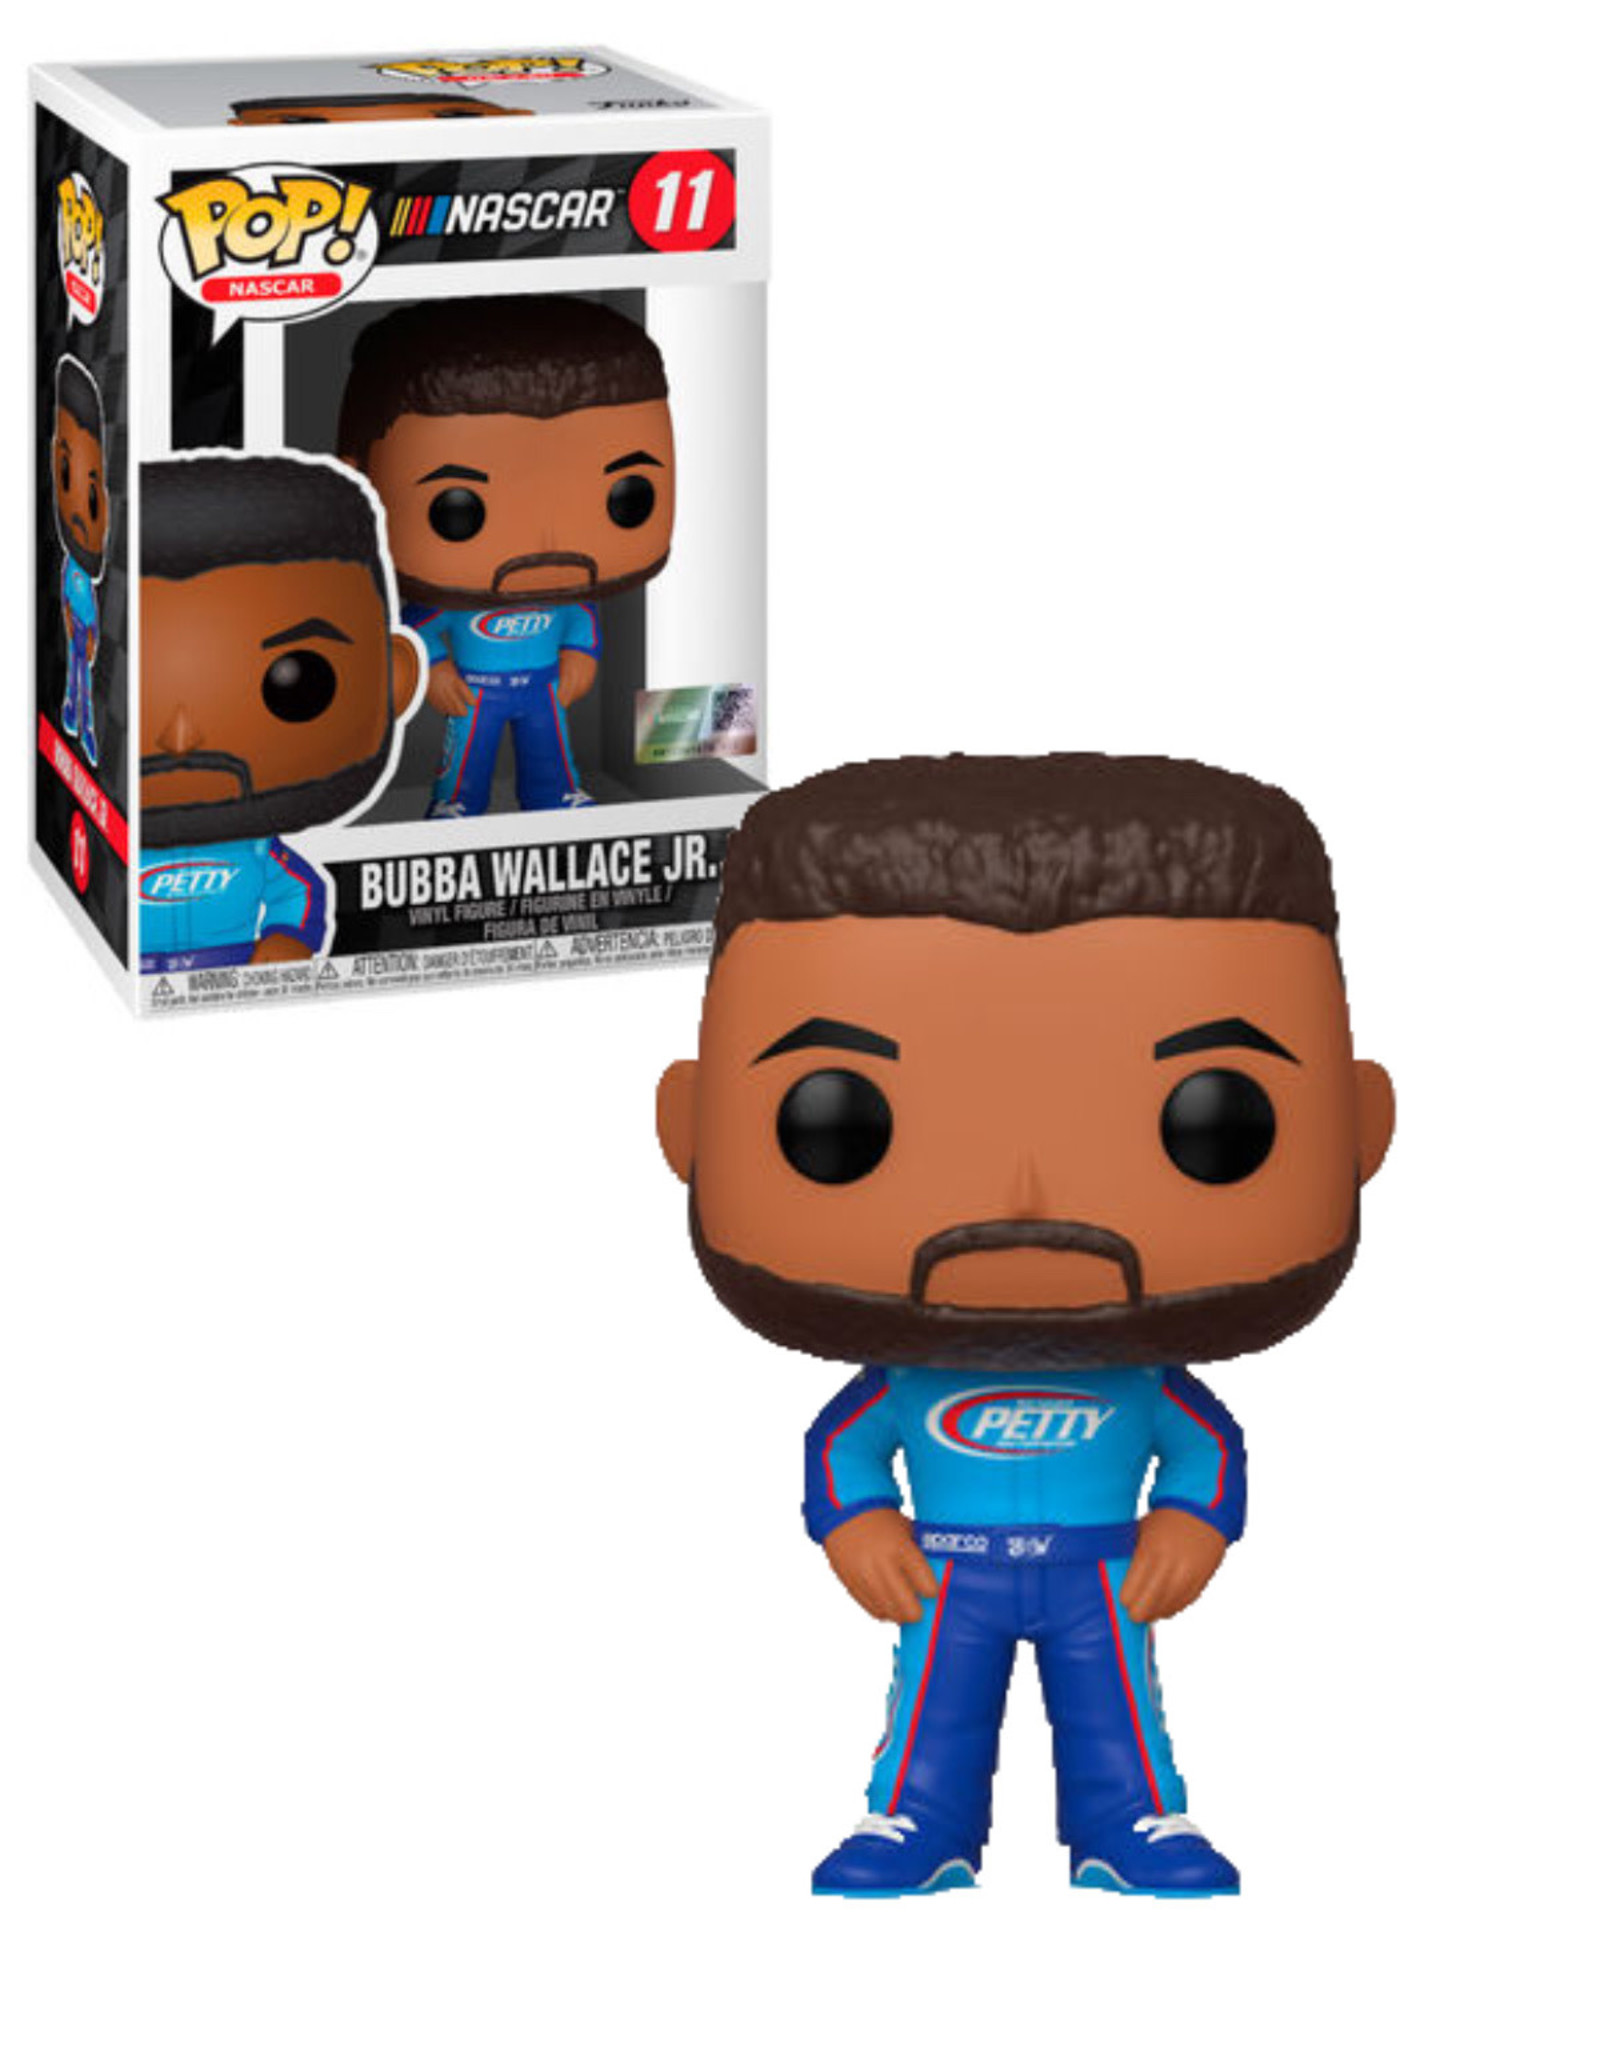 Nascar 11 ( Funko Pop ) Bubba Wallace JR.